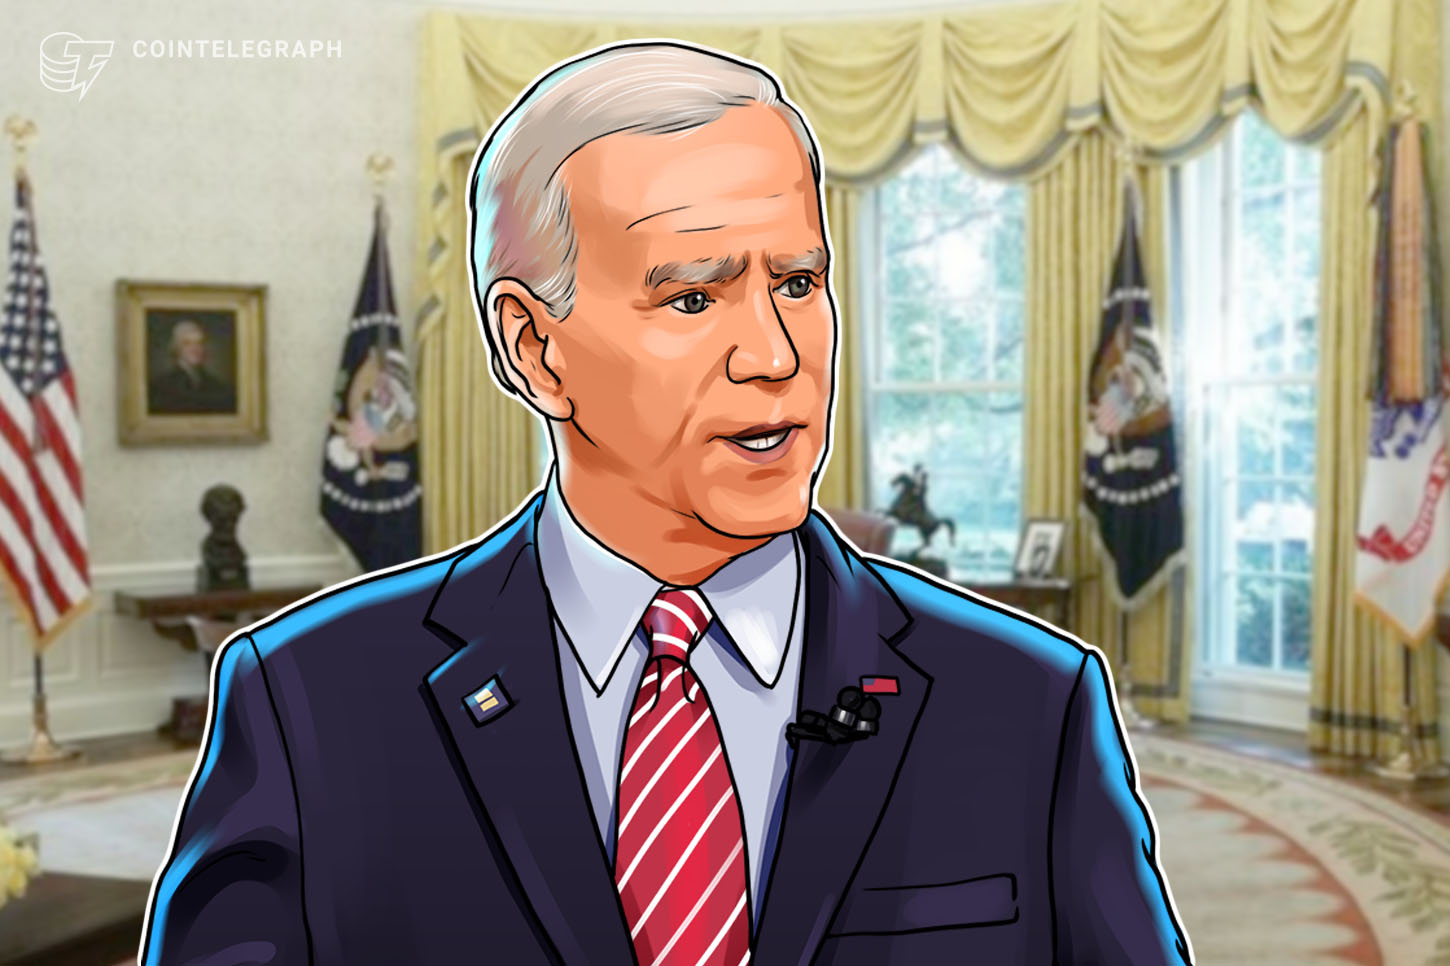 Biden to discuss crypto's role in ransomware attacks at G7, says national security adviser